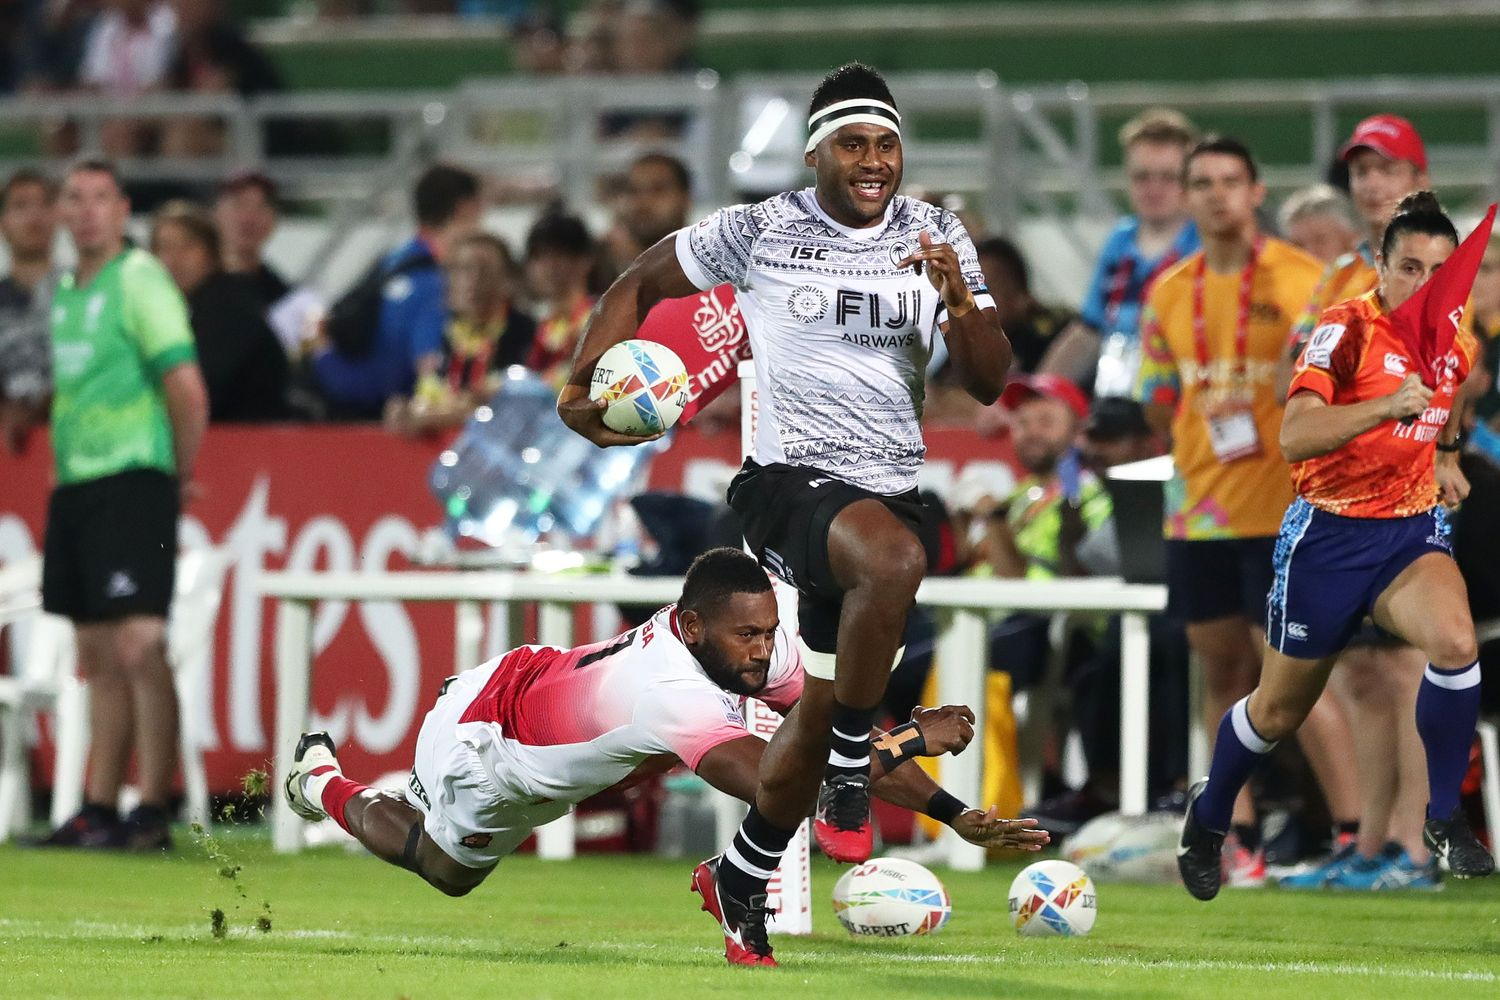 Emirates Airline Dubai Rugby Sevens 2019 - Men's